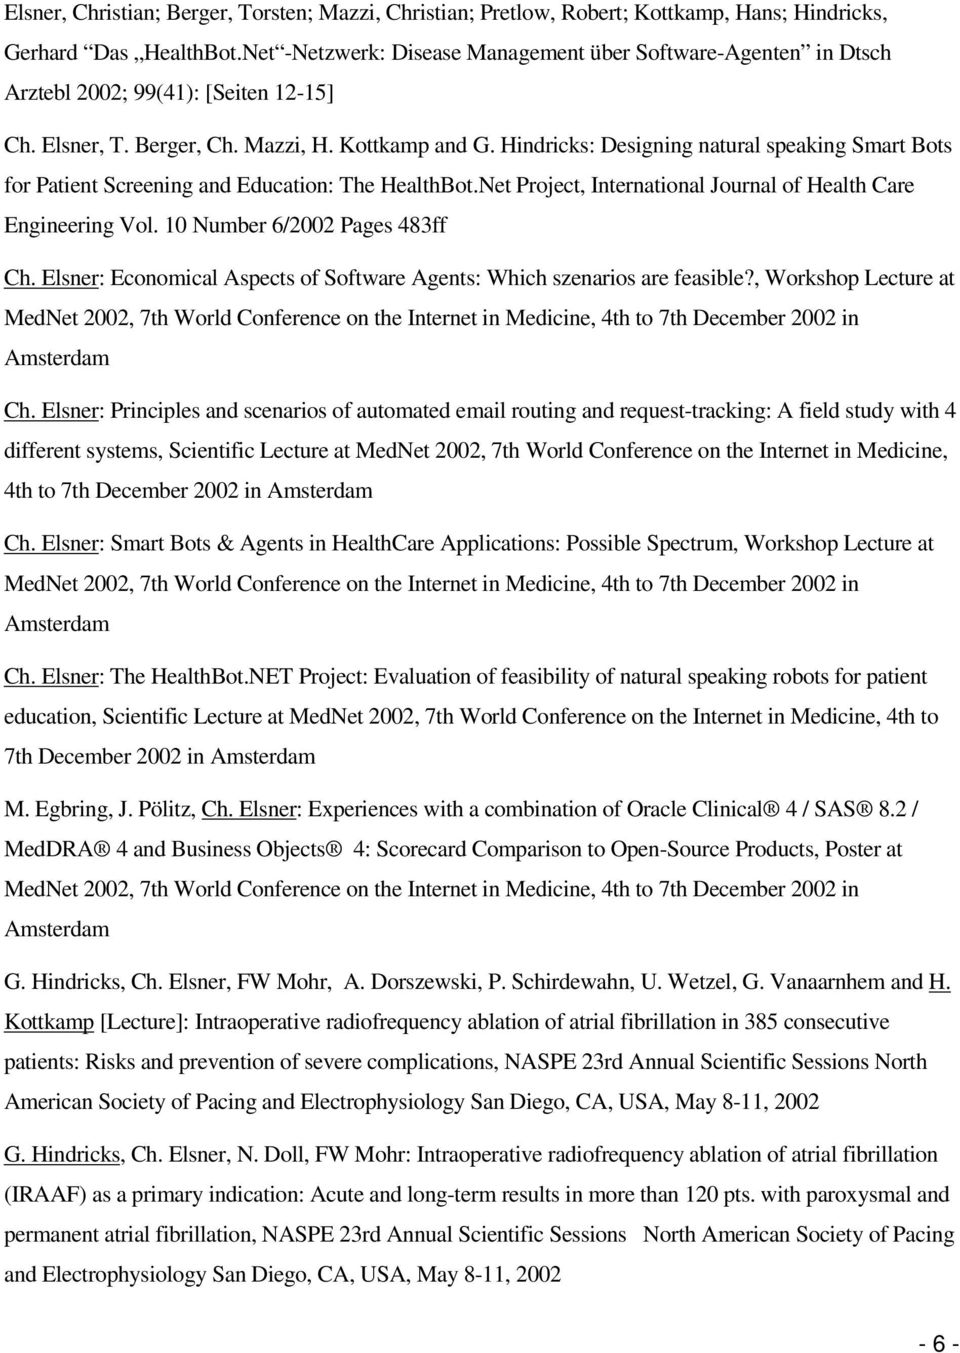 Hindricks: Designing natural speaking Smart Bots for Patient Screening and Education: The HealthBot.Net Project, International Journal of Health Care Engineering Vol. 10 Number 6/2002 Pages 483ff Ch.